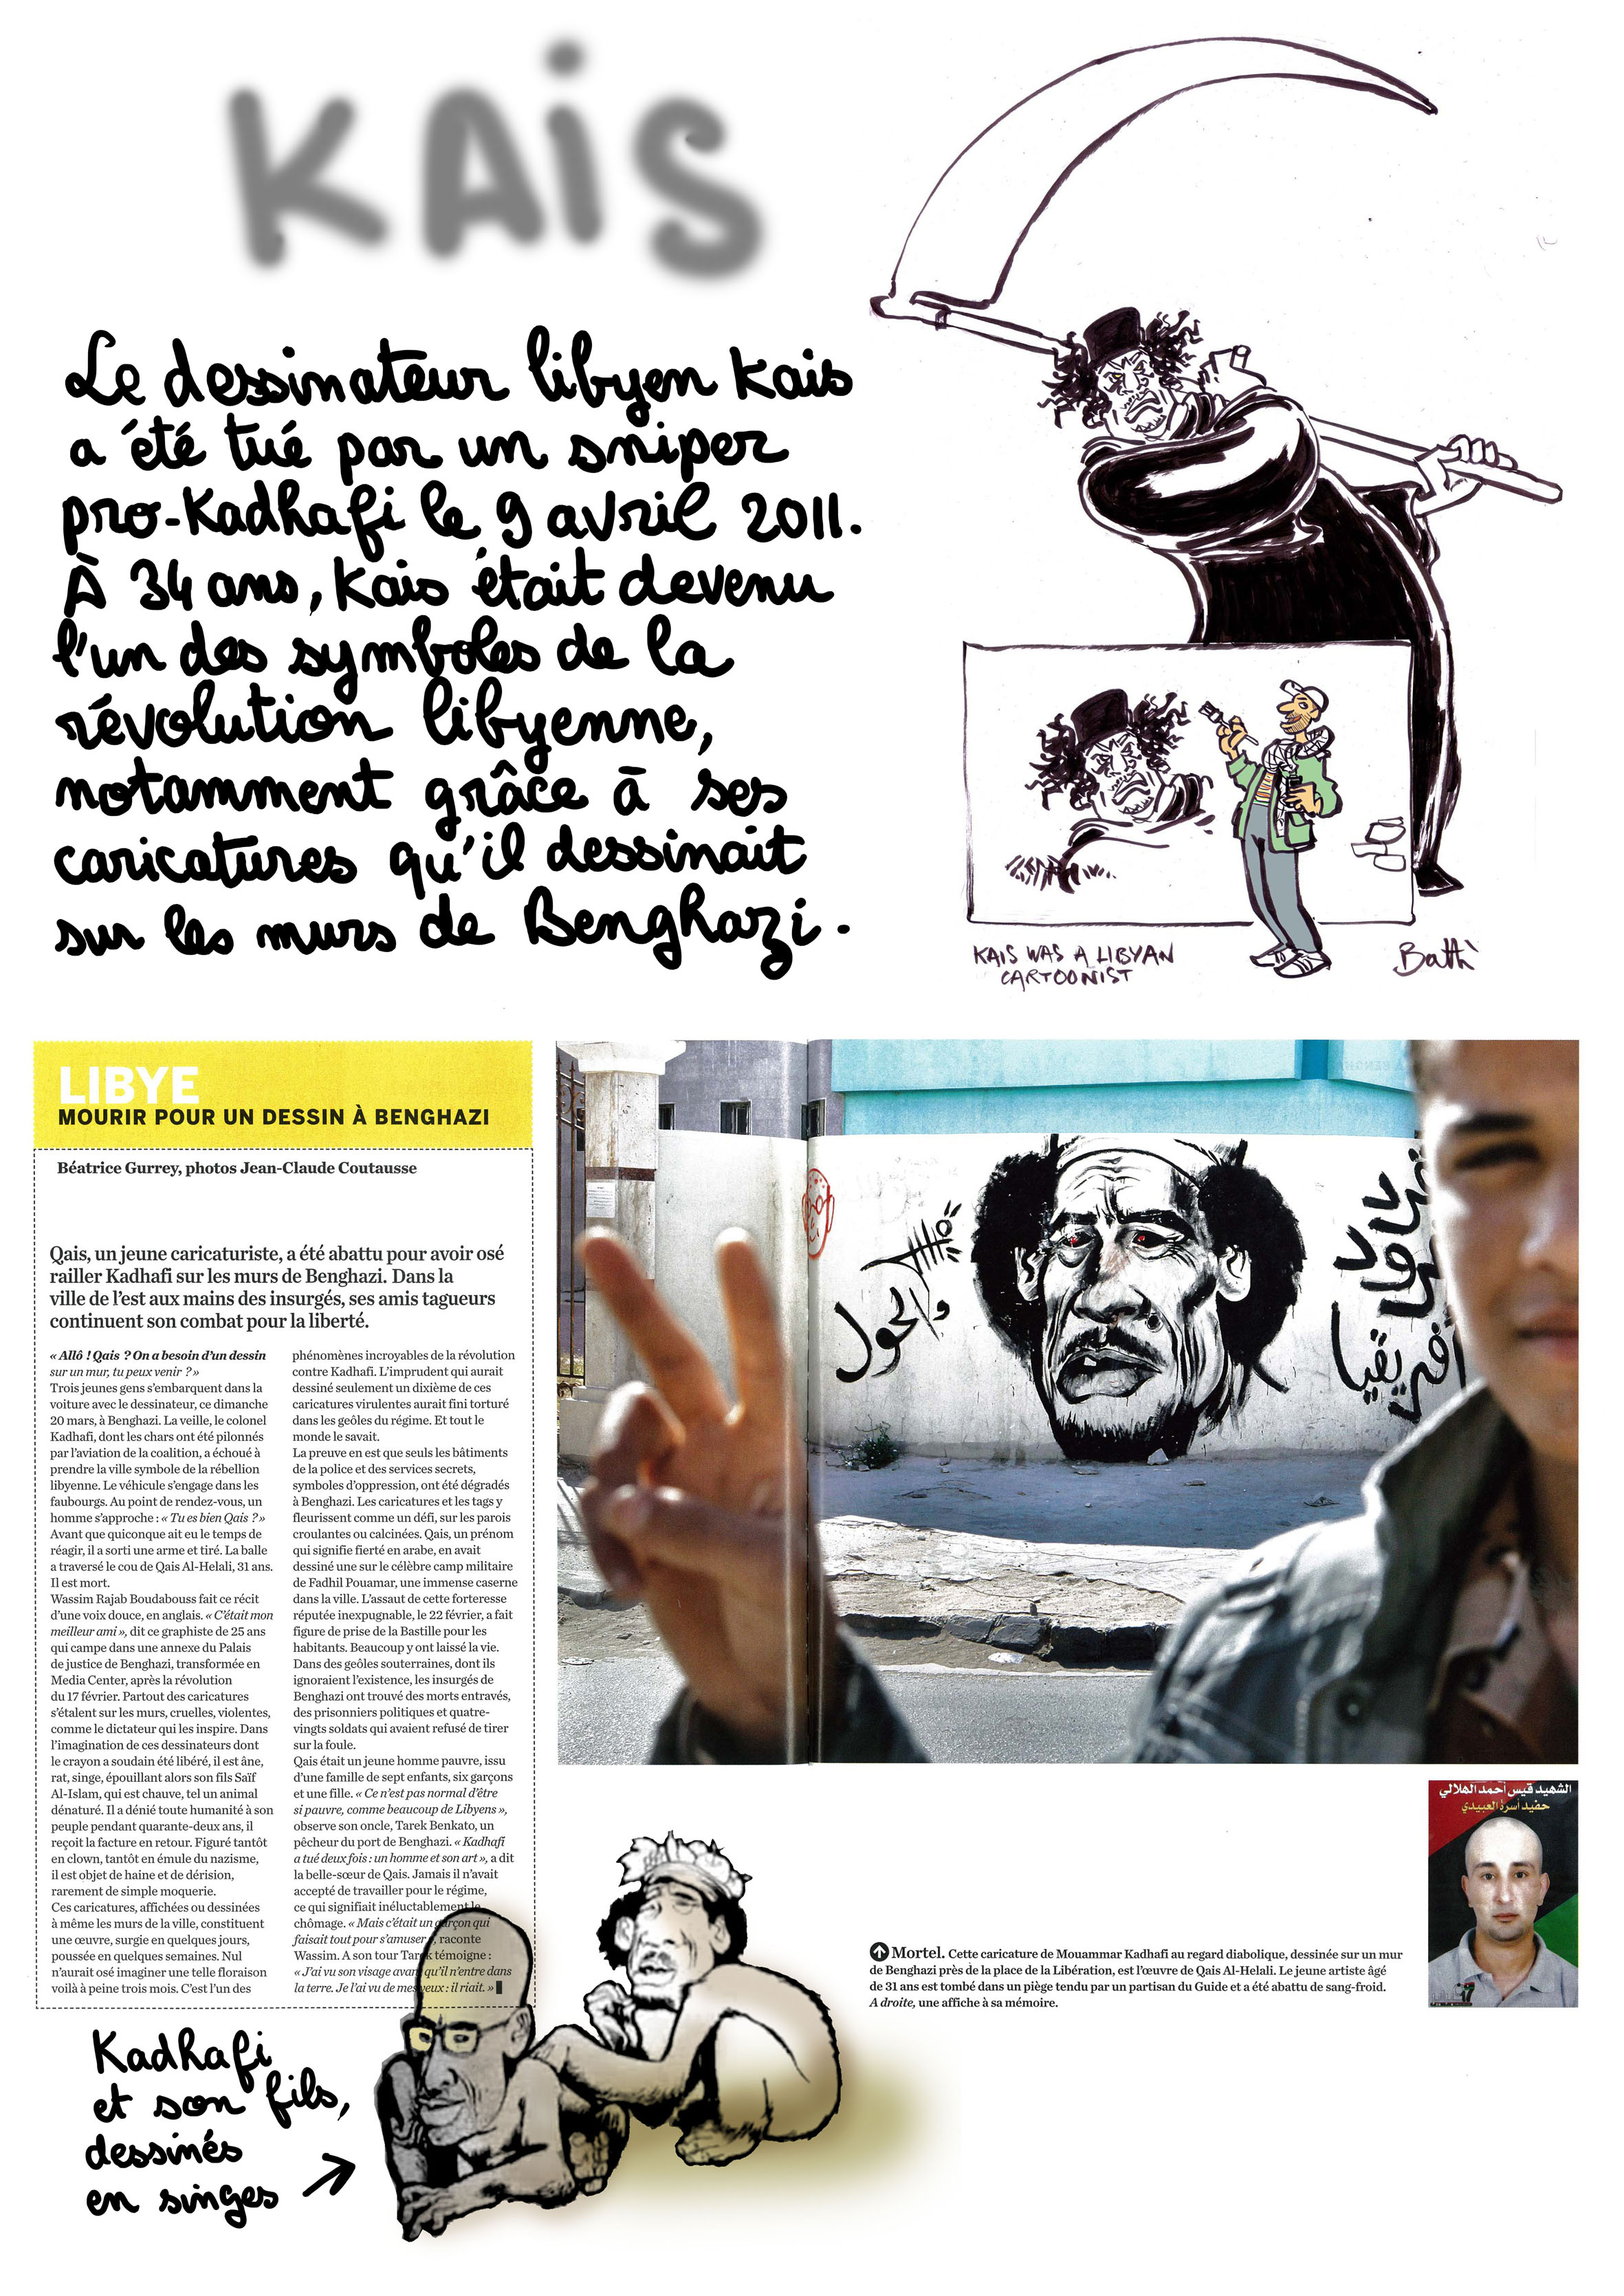 Soutien de Plantu et de Cartooning for Peace au dessinateur libyen Kais